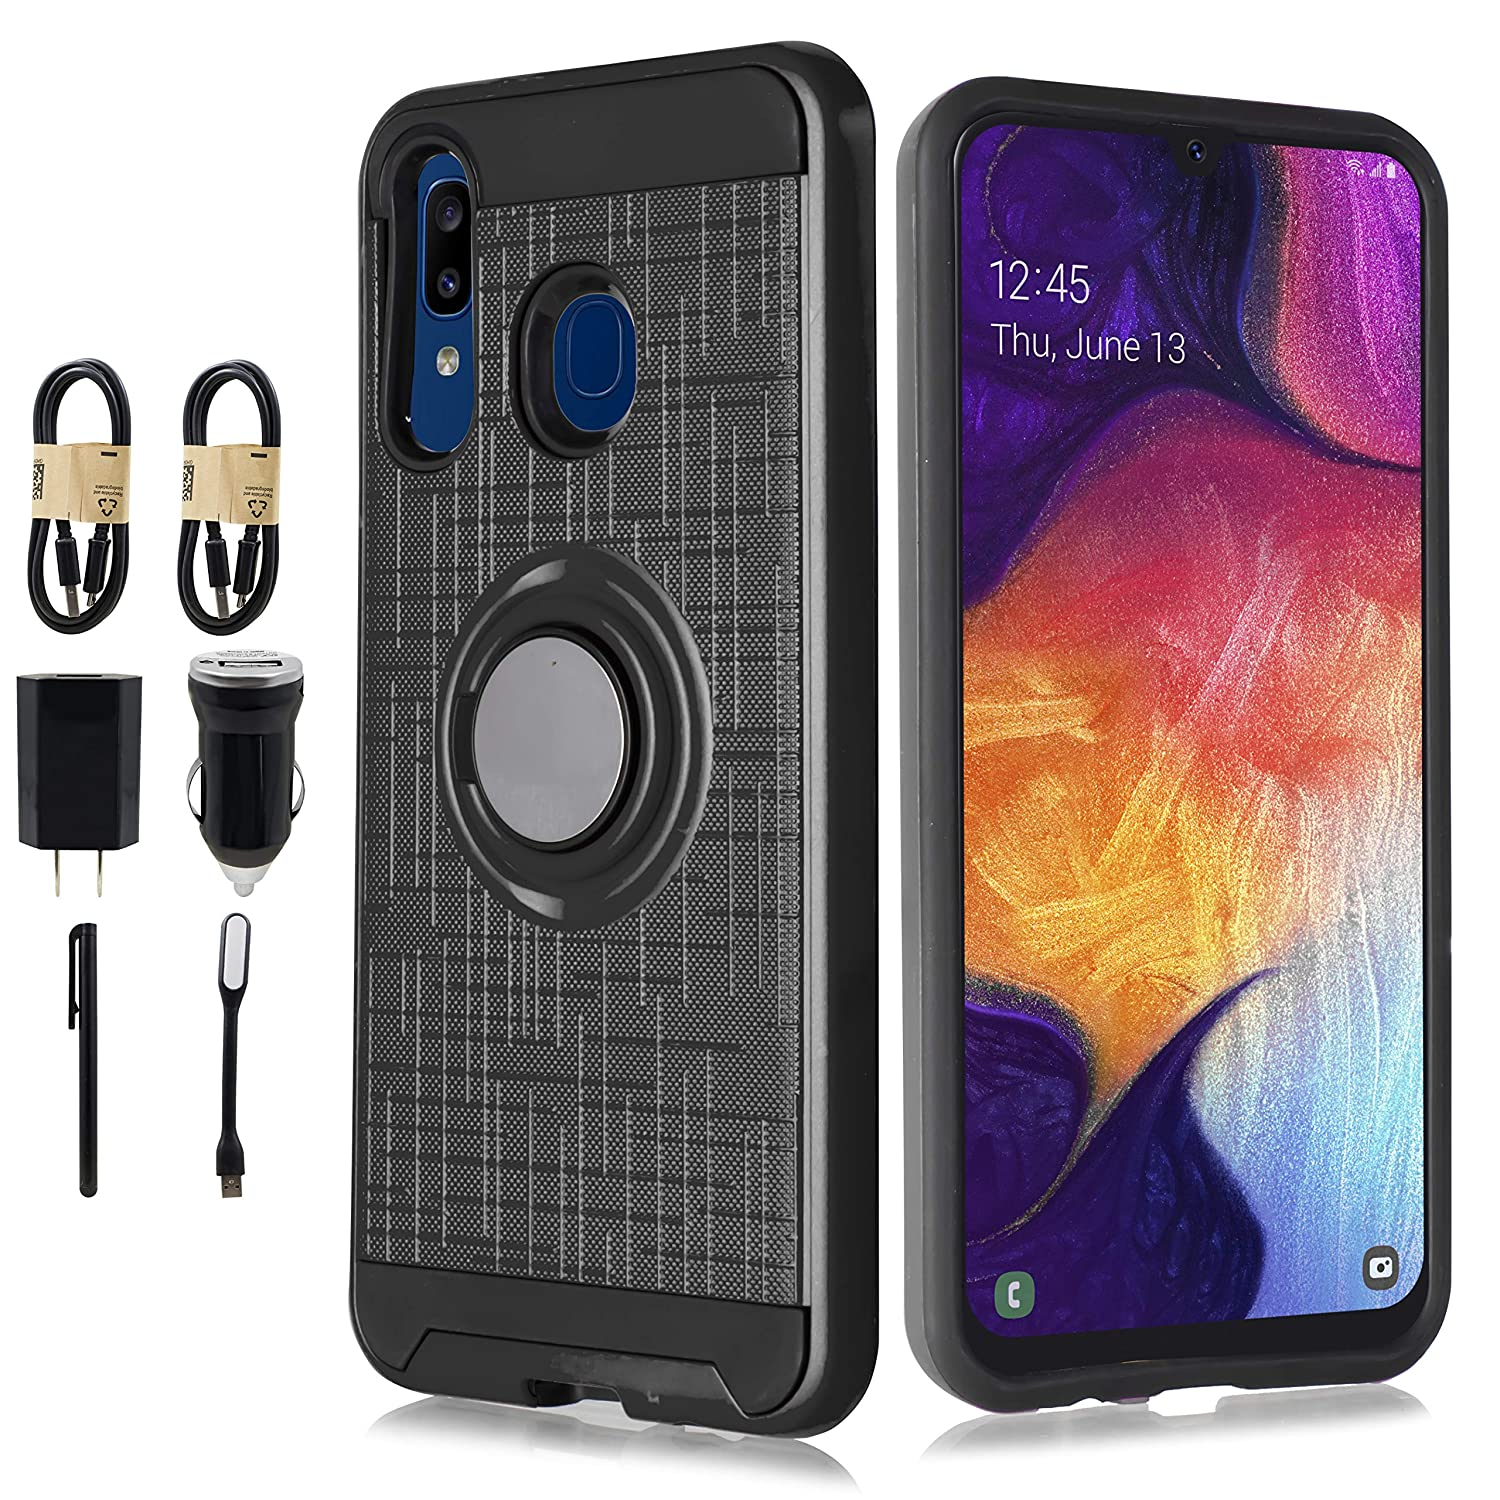 Galaxy A20 Case, Galaxy A30 Case, Hybrid Rotating Ring Holder Kickstand Shockproof Anti-Scratch Rugged Bumper Armor Drop Protective Case for Samsung Galaxy A30 [Accessory] (Black)